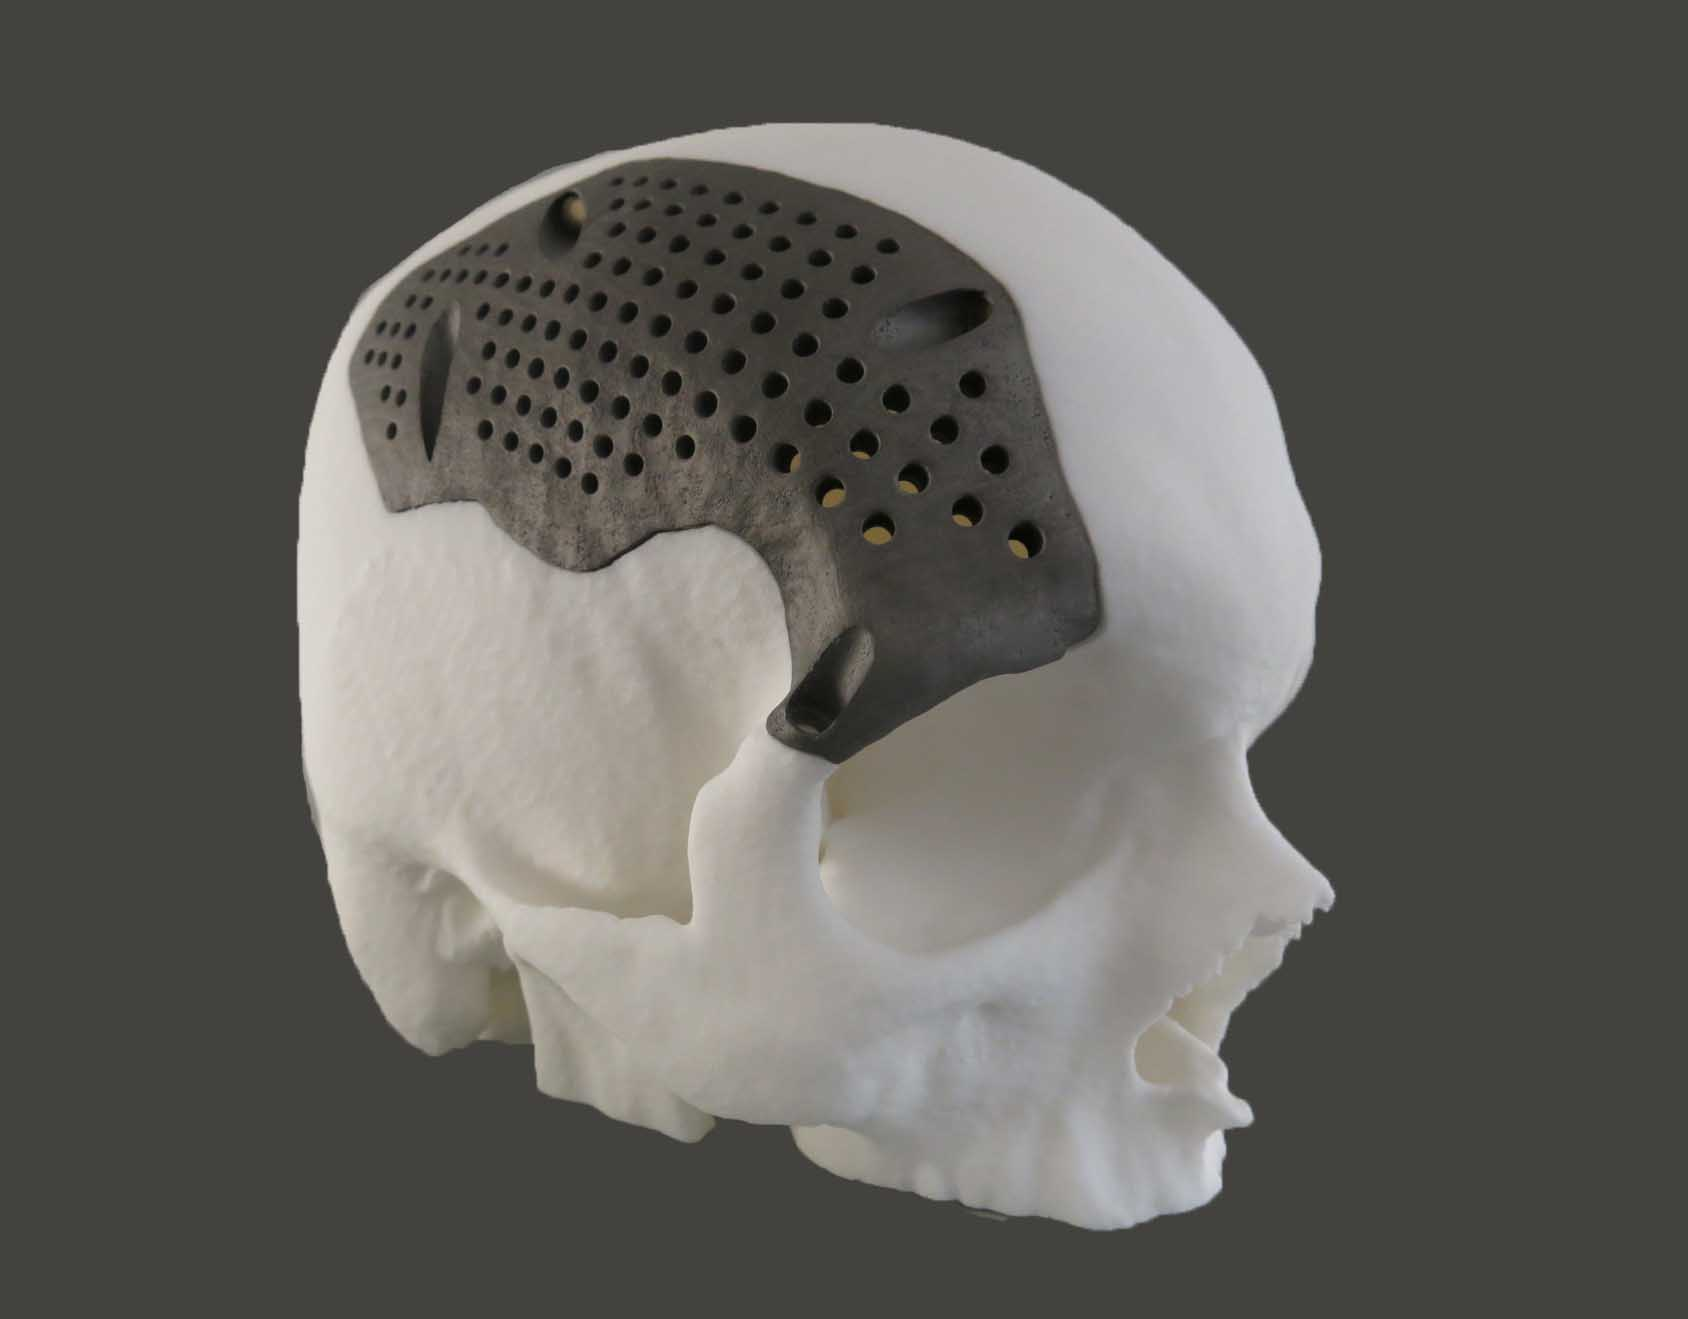 3D Printed titanium-medical-implants-sculpteo